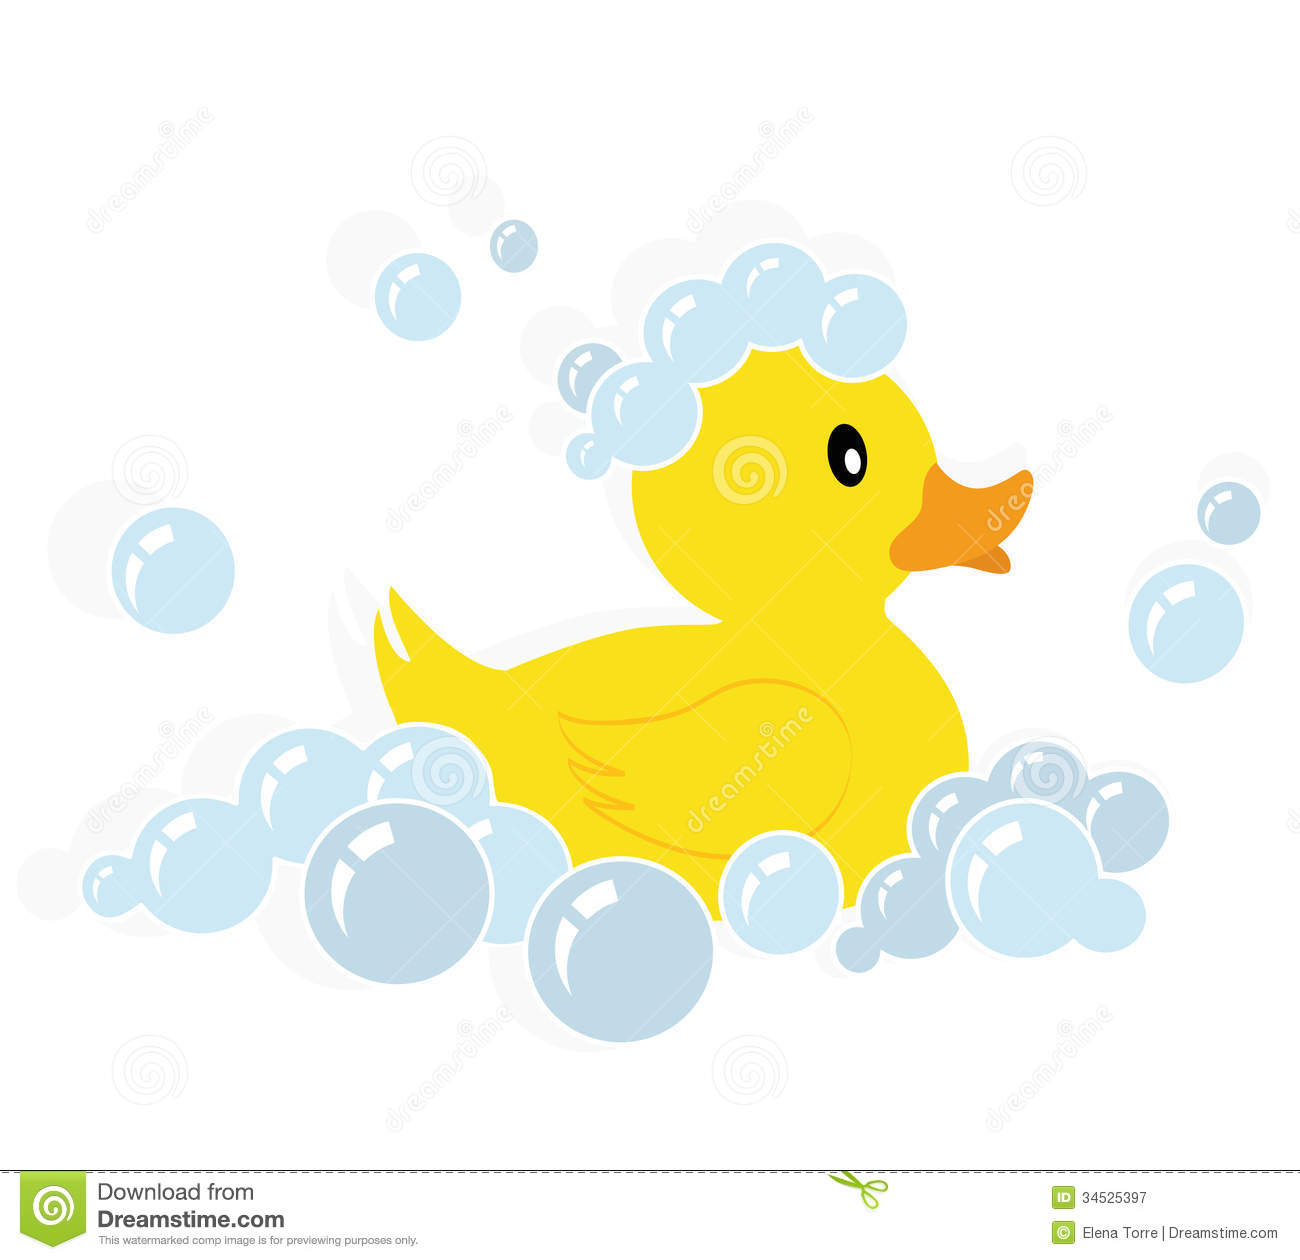 12 Rubber Ducky Clip Art Vector Images